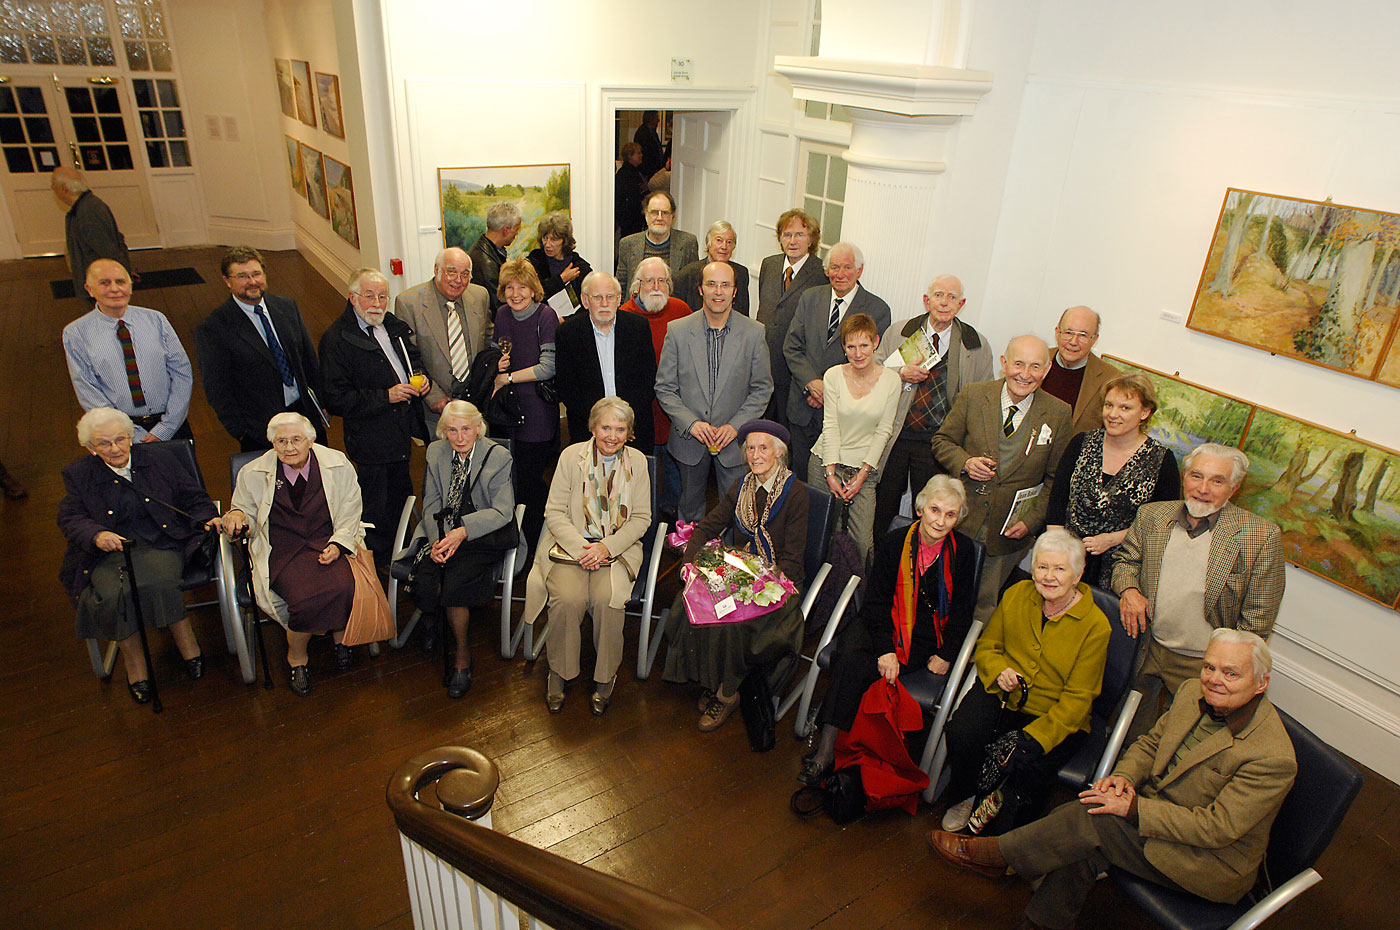 Joan Baker (seated with flowers) and some of her former pupils and staff colleagues, Oriel y Bont, 2009